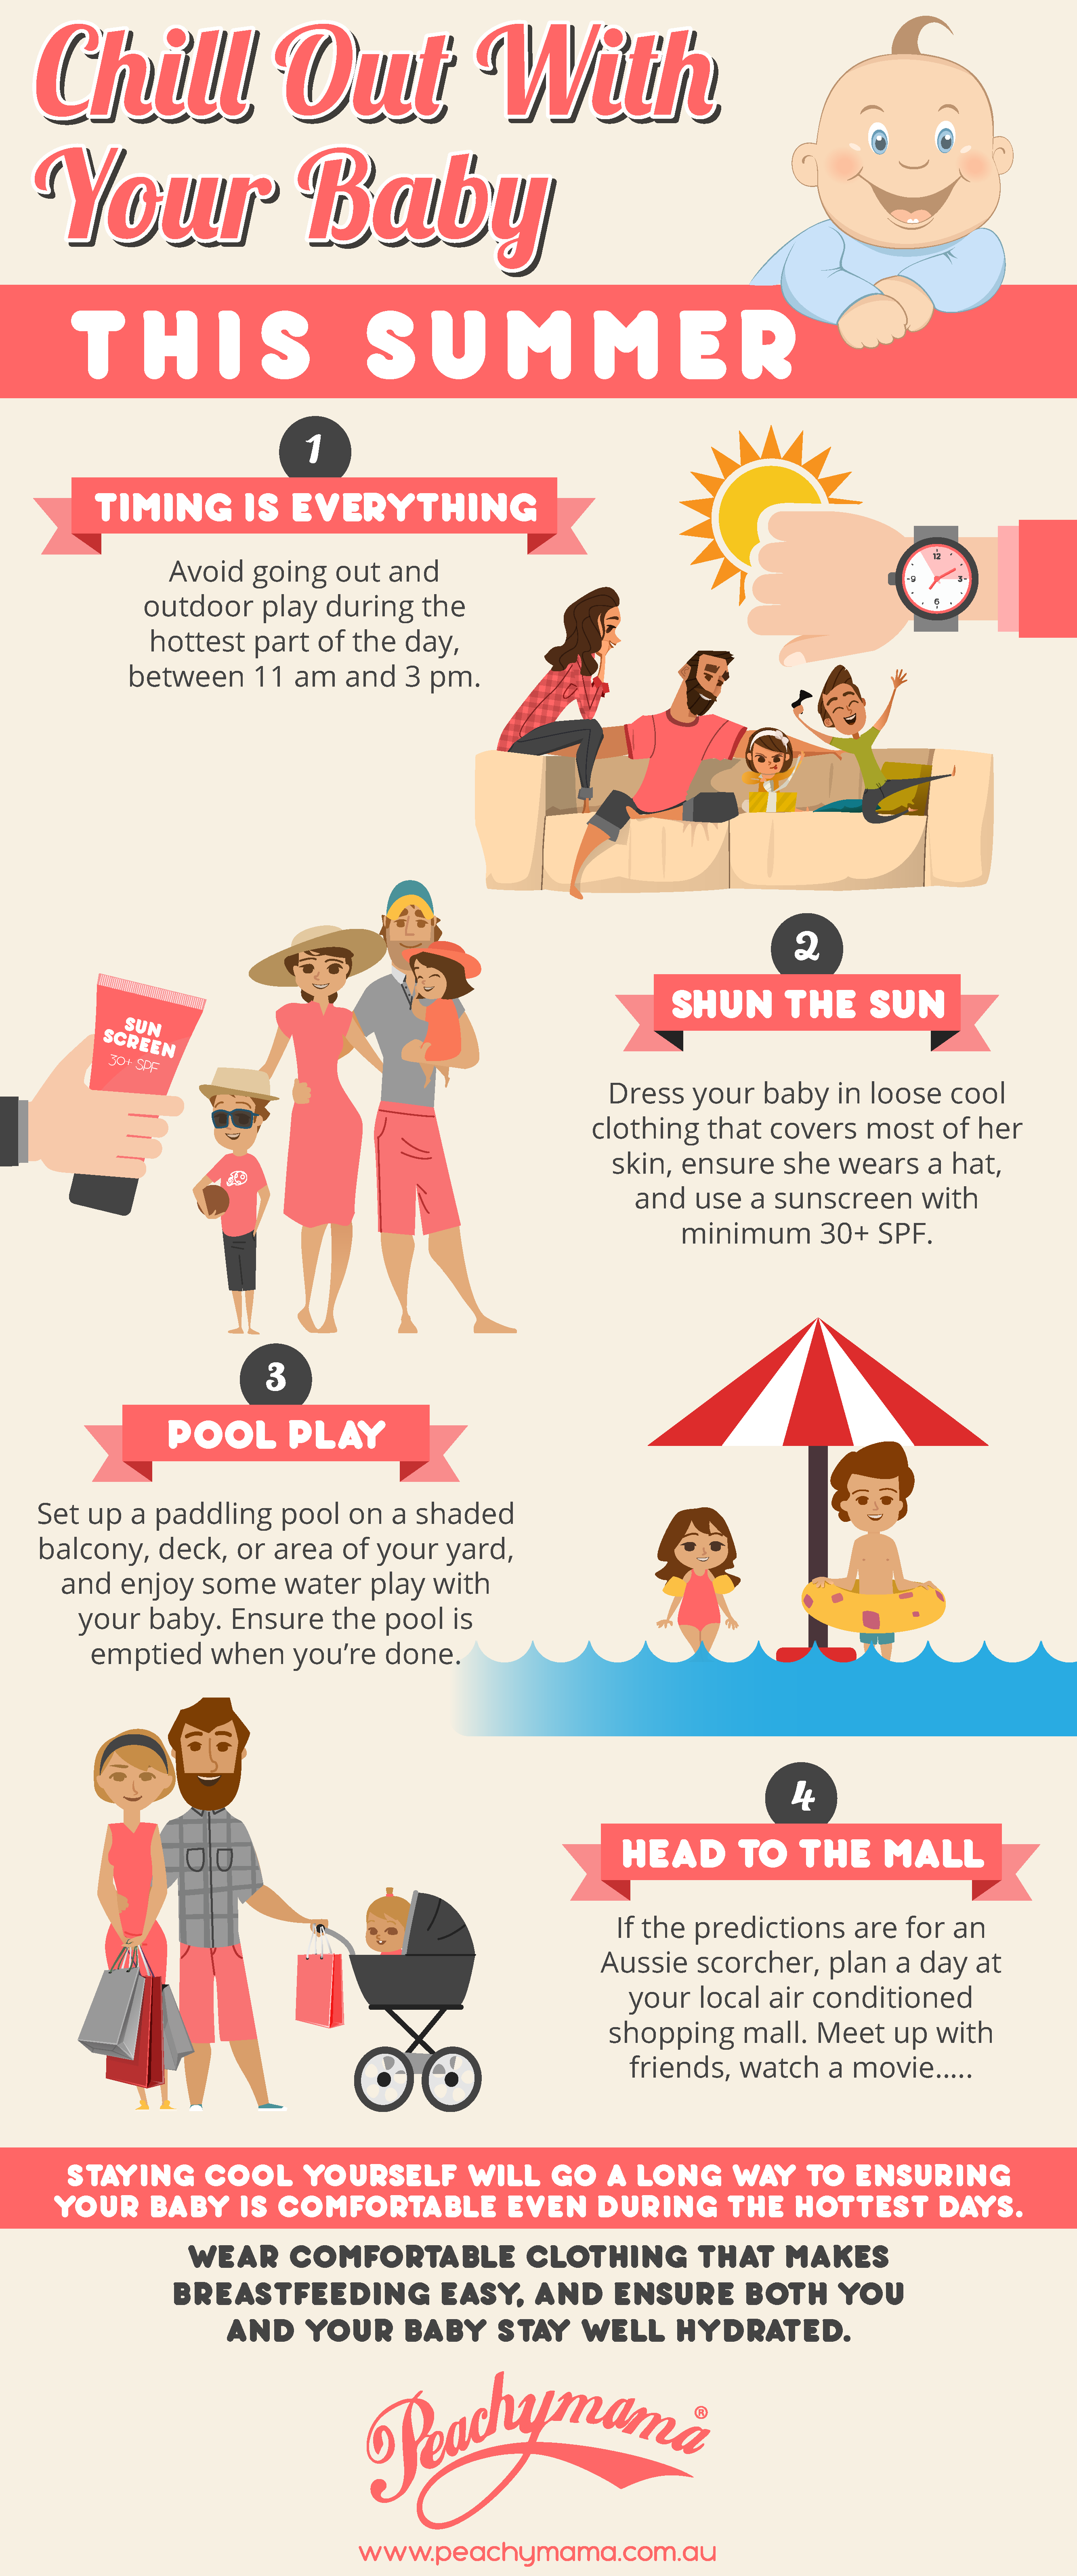 Chill out with your baby this summer - infographic